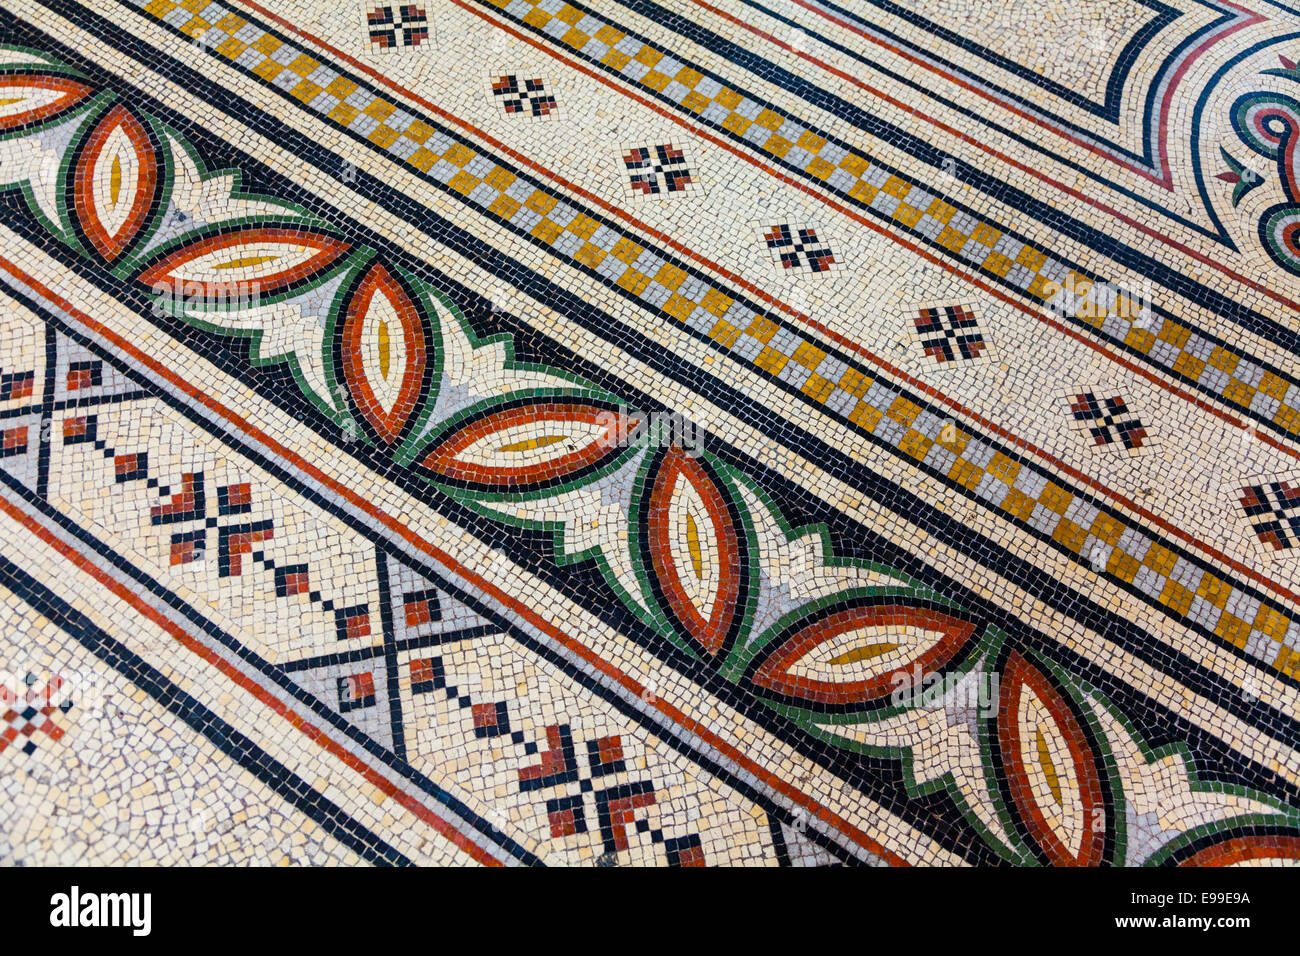 Abstract example of mosaic flooring in the Cathedreal Major, Marseille, France. - Stock Image